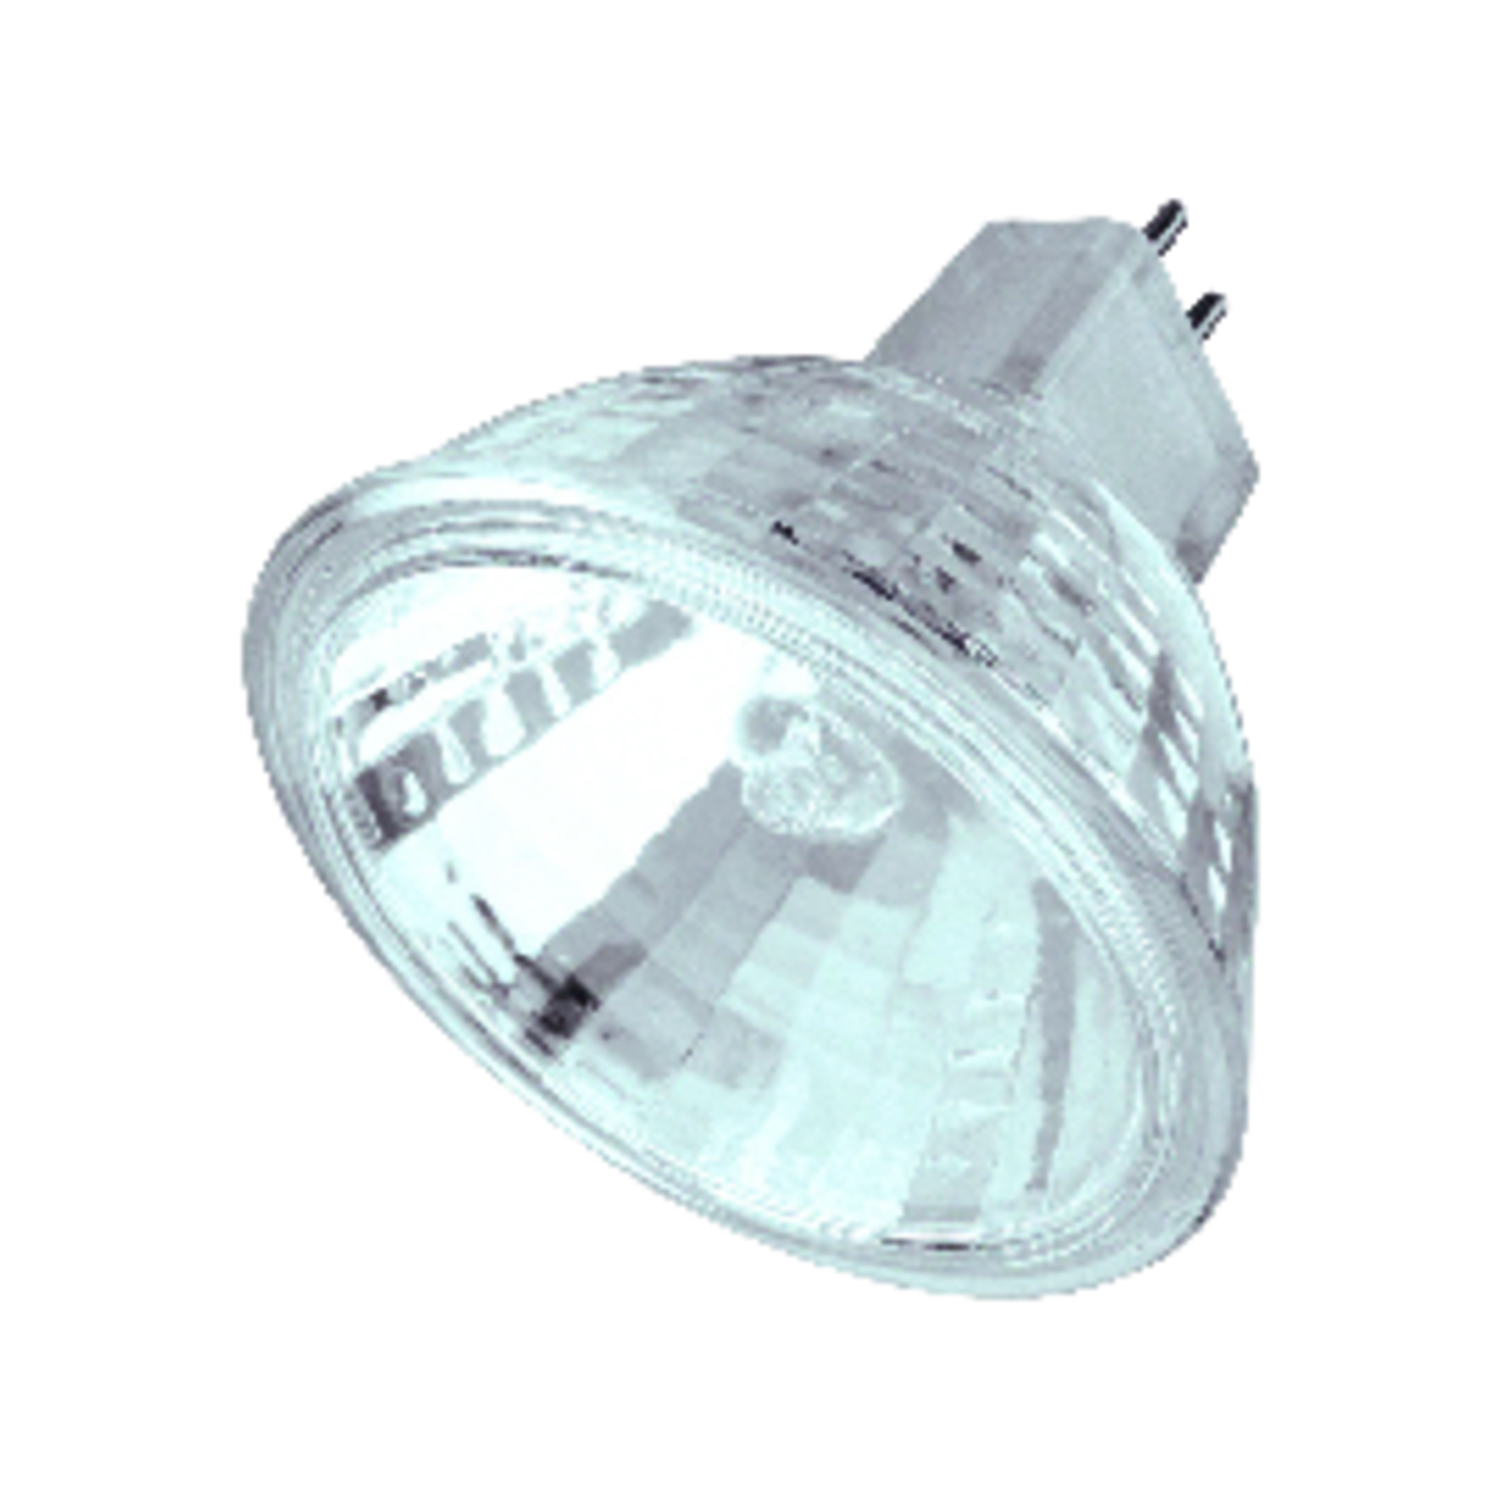 Ace 86 watts PAR38 Halogen Bulb 1690 lumens 2 pk Floodlight Soft ...